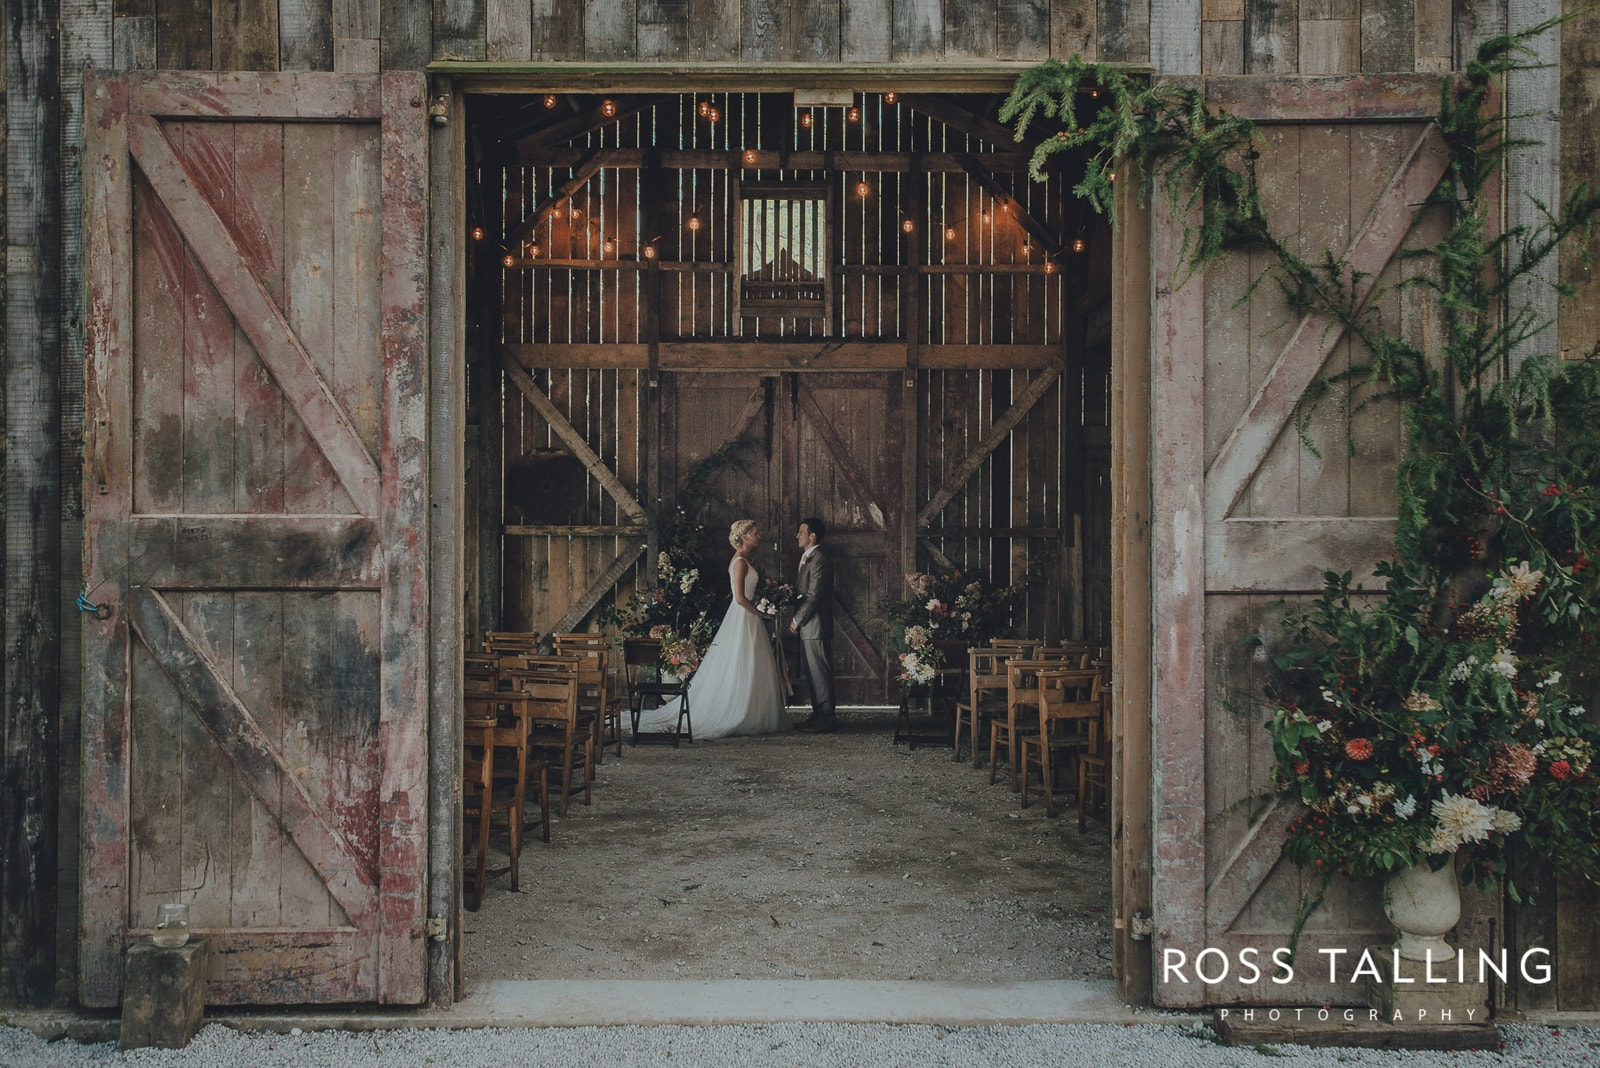 nancarrow-farms-rusty-barn-wedding-venue